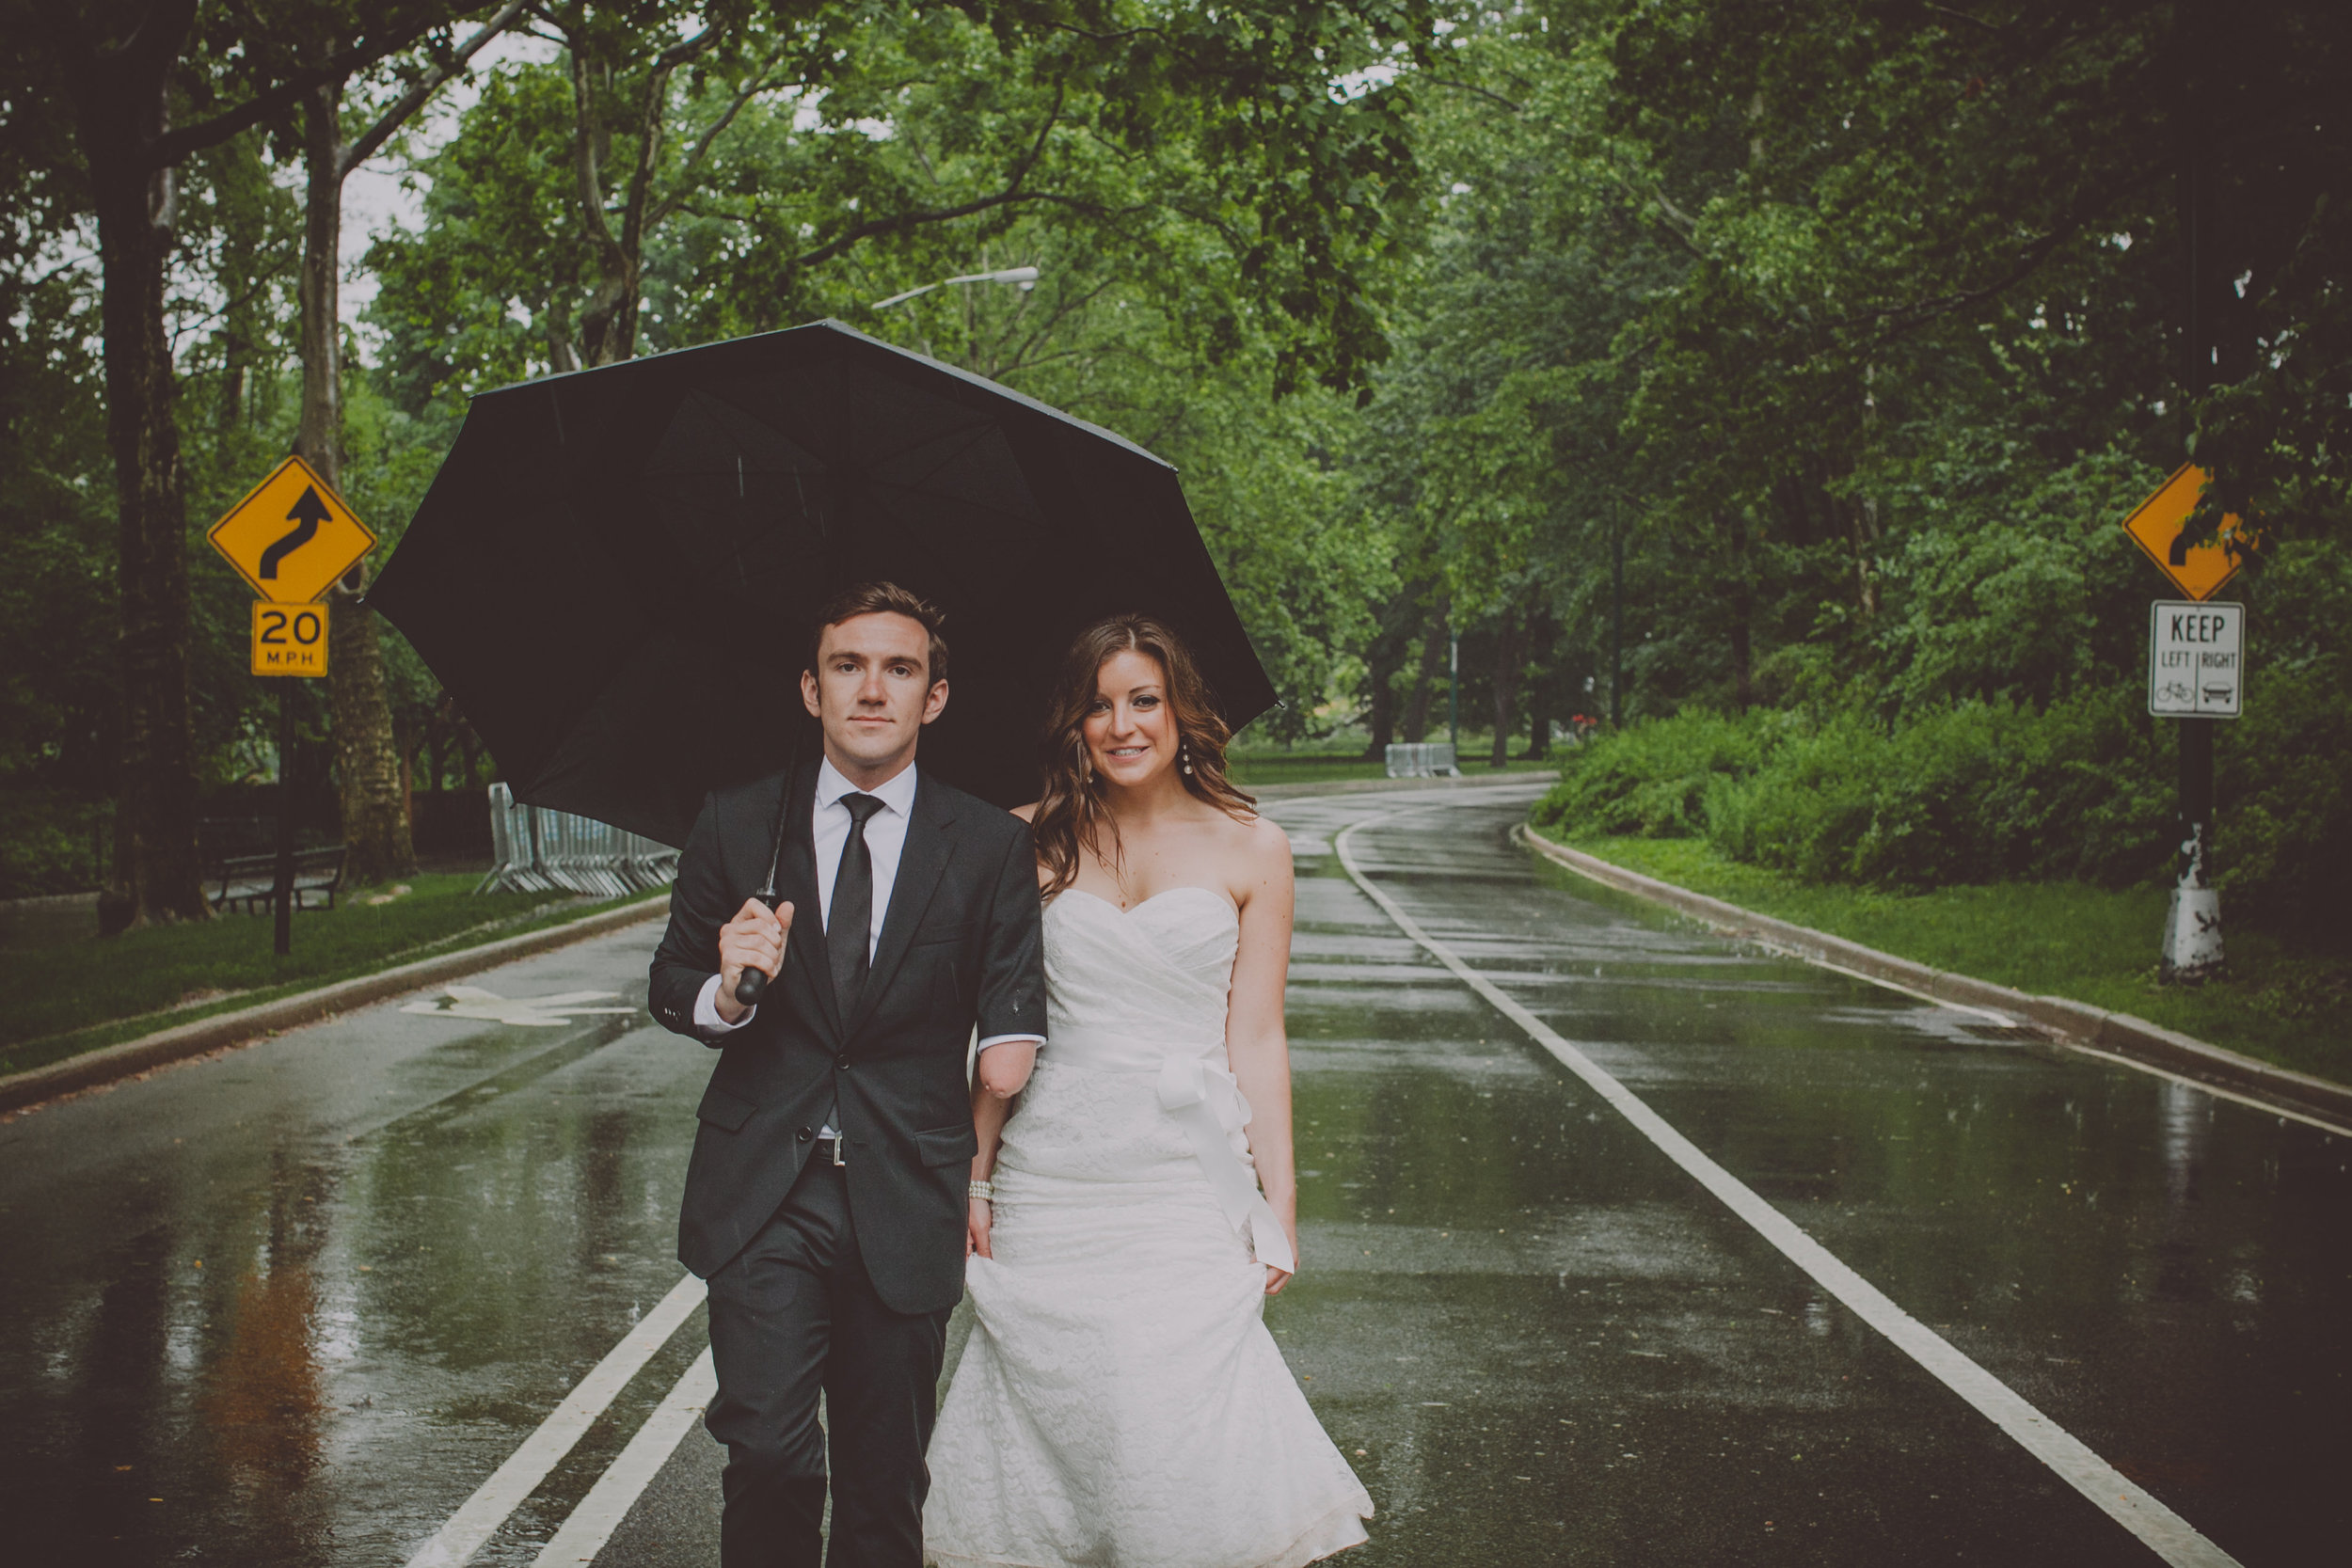 Central_Park_Rainy_Wedding_NYC_E442lopement.JPG